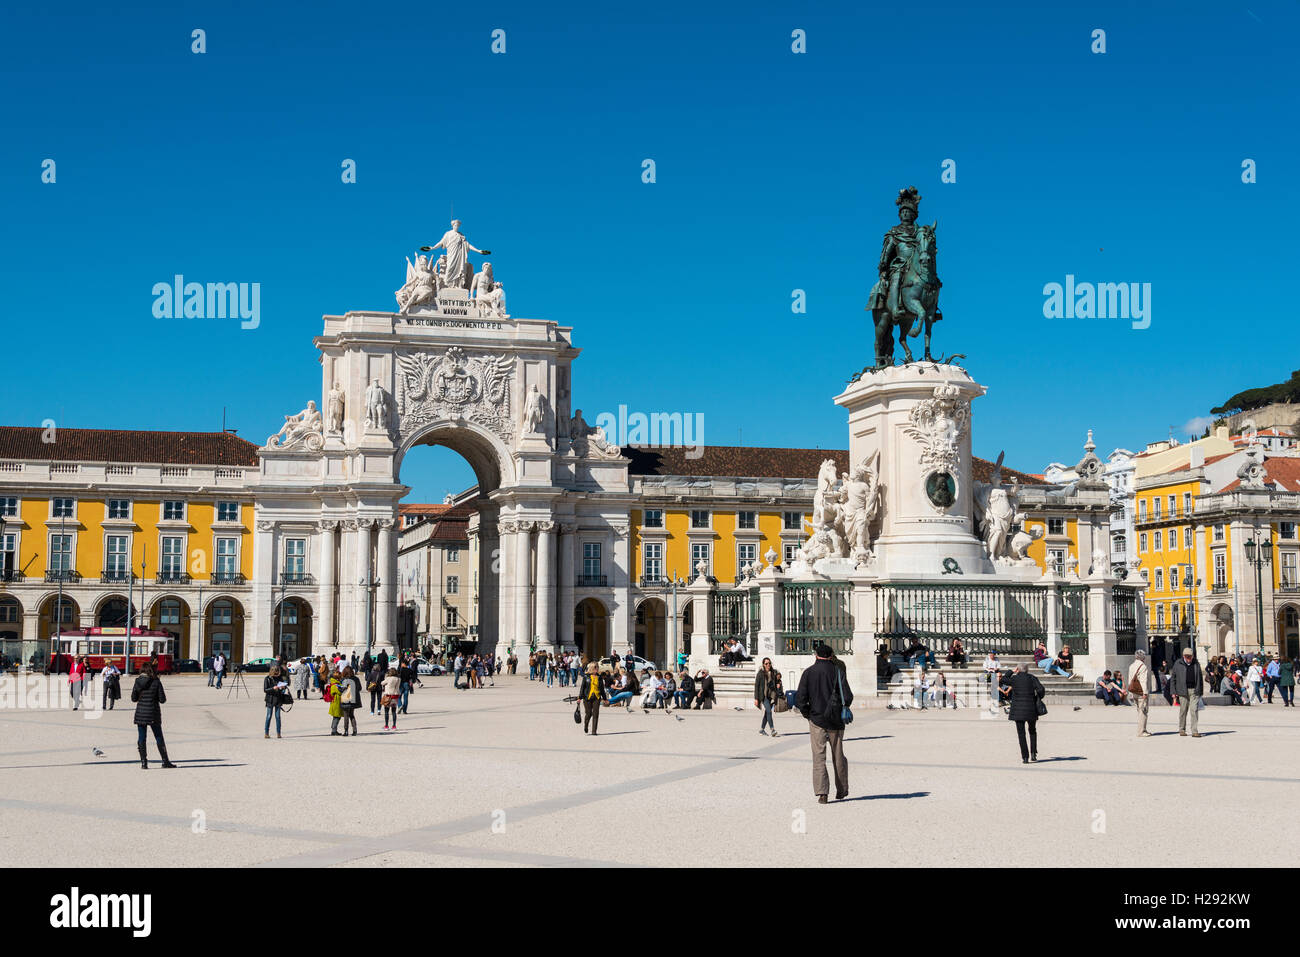 Arco da Vitoria, equestrian statue of King Joseph I at Praça do Comércio, Lisbon, Portugal - Stock Image